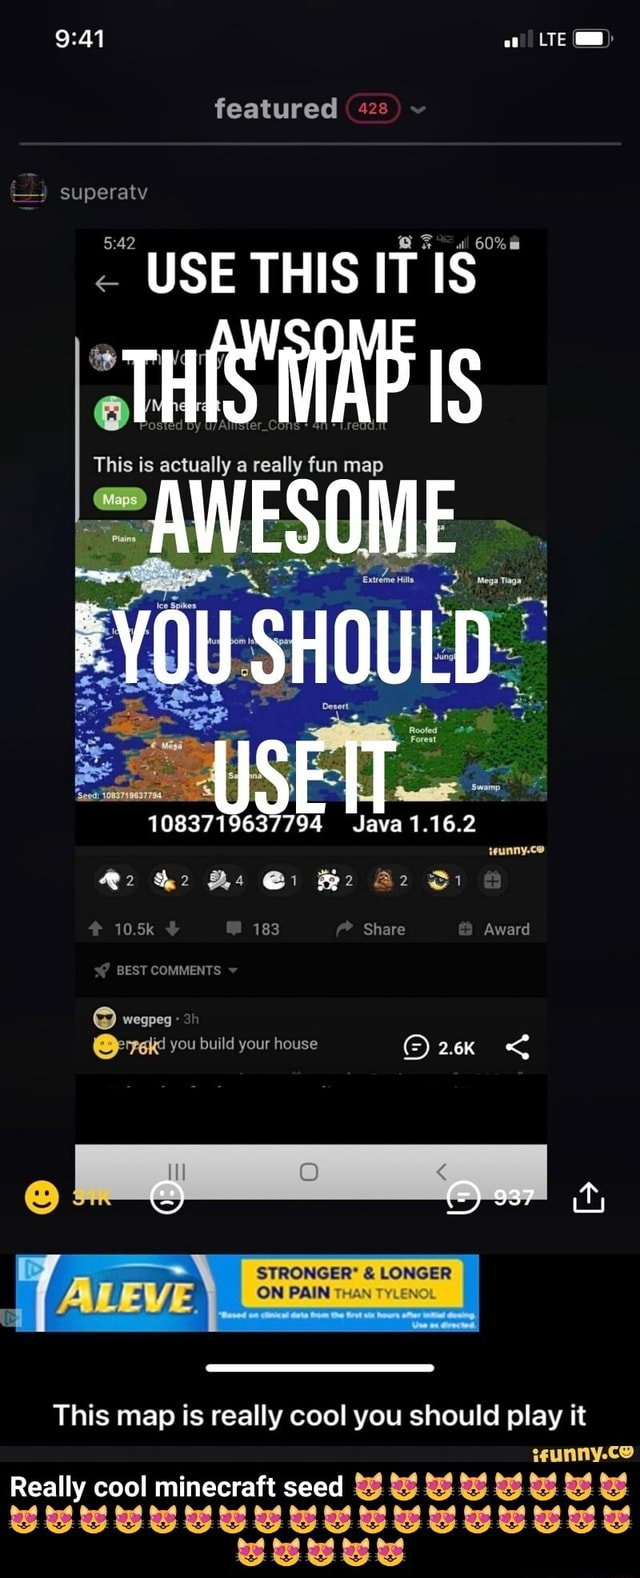 LTE featured  superaty USE THIS IT IS This is actually a really fun map AWESOME 1083719637794 Java 1.16.2 Be Bi 10.5k 183 Share Award S BEST COMMENTS wegpeg you build your house 2.6K  STRONGER* LONGER ON PAINT THAN TYLEN This map is really cool you should play it Really cool minecraft seed  Really cool minecraft seed  meme